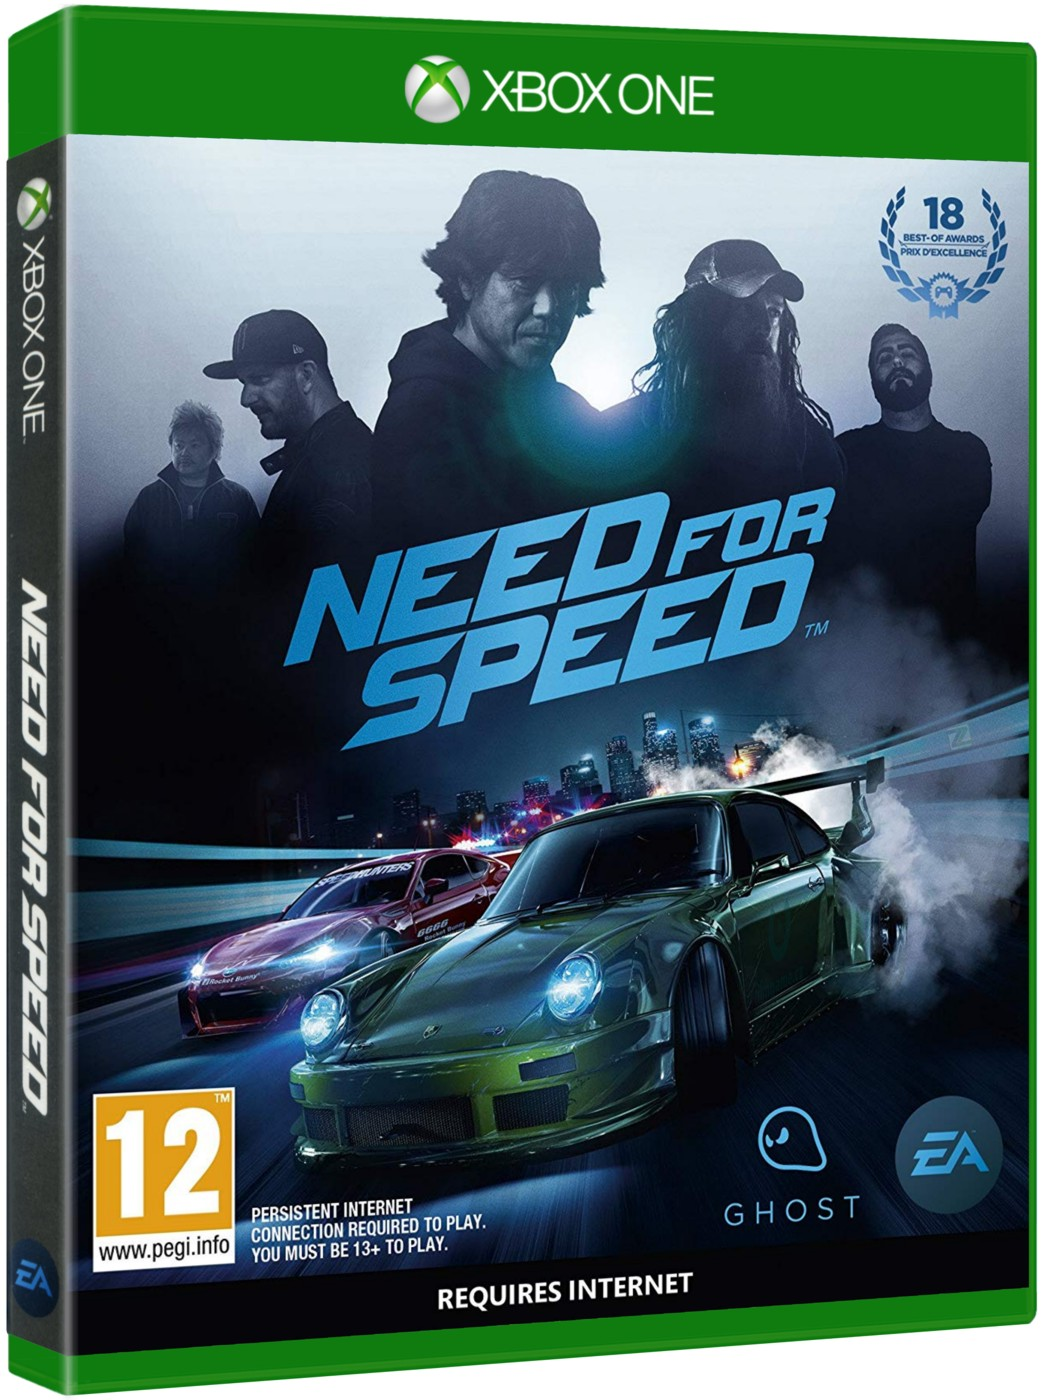 NEED FOR SPEED (2016) - Xbox One